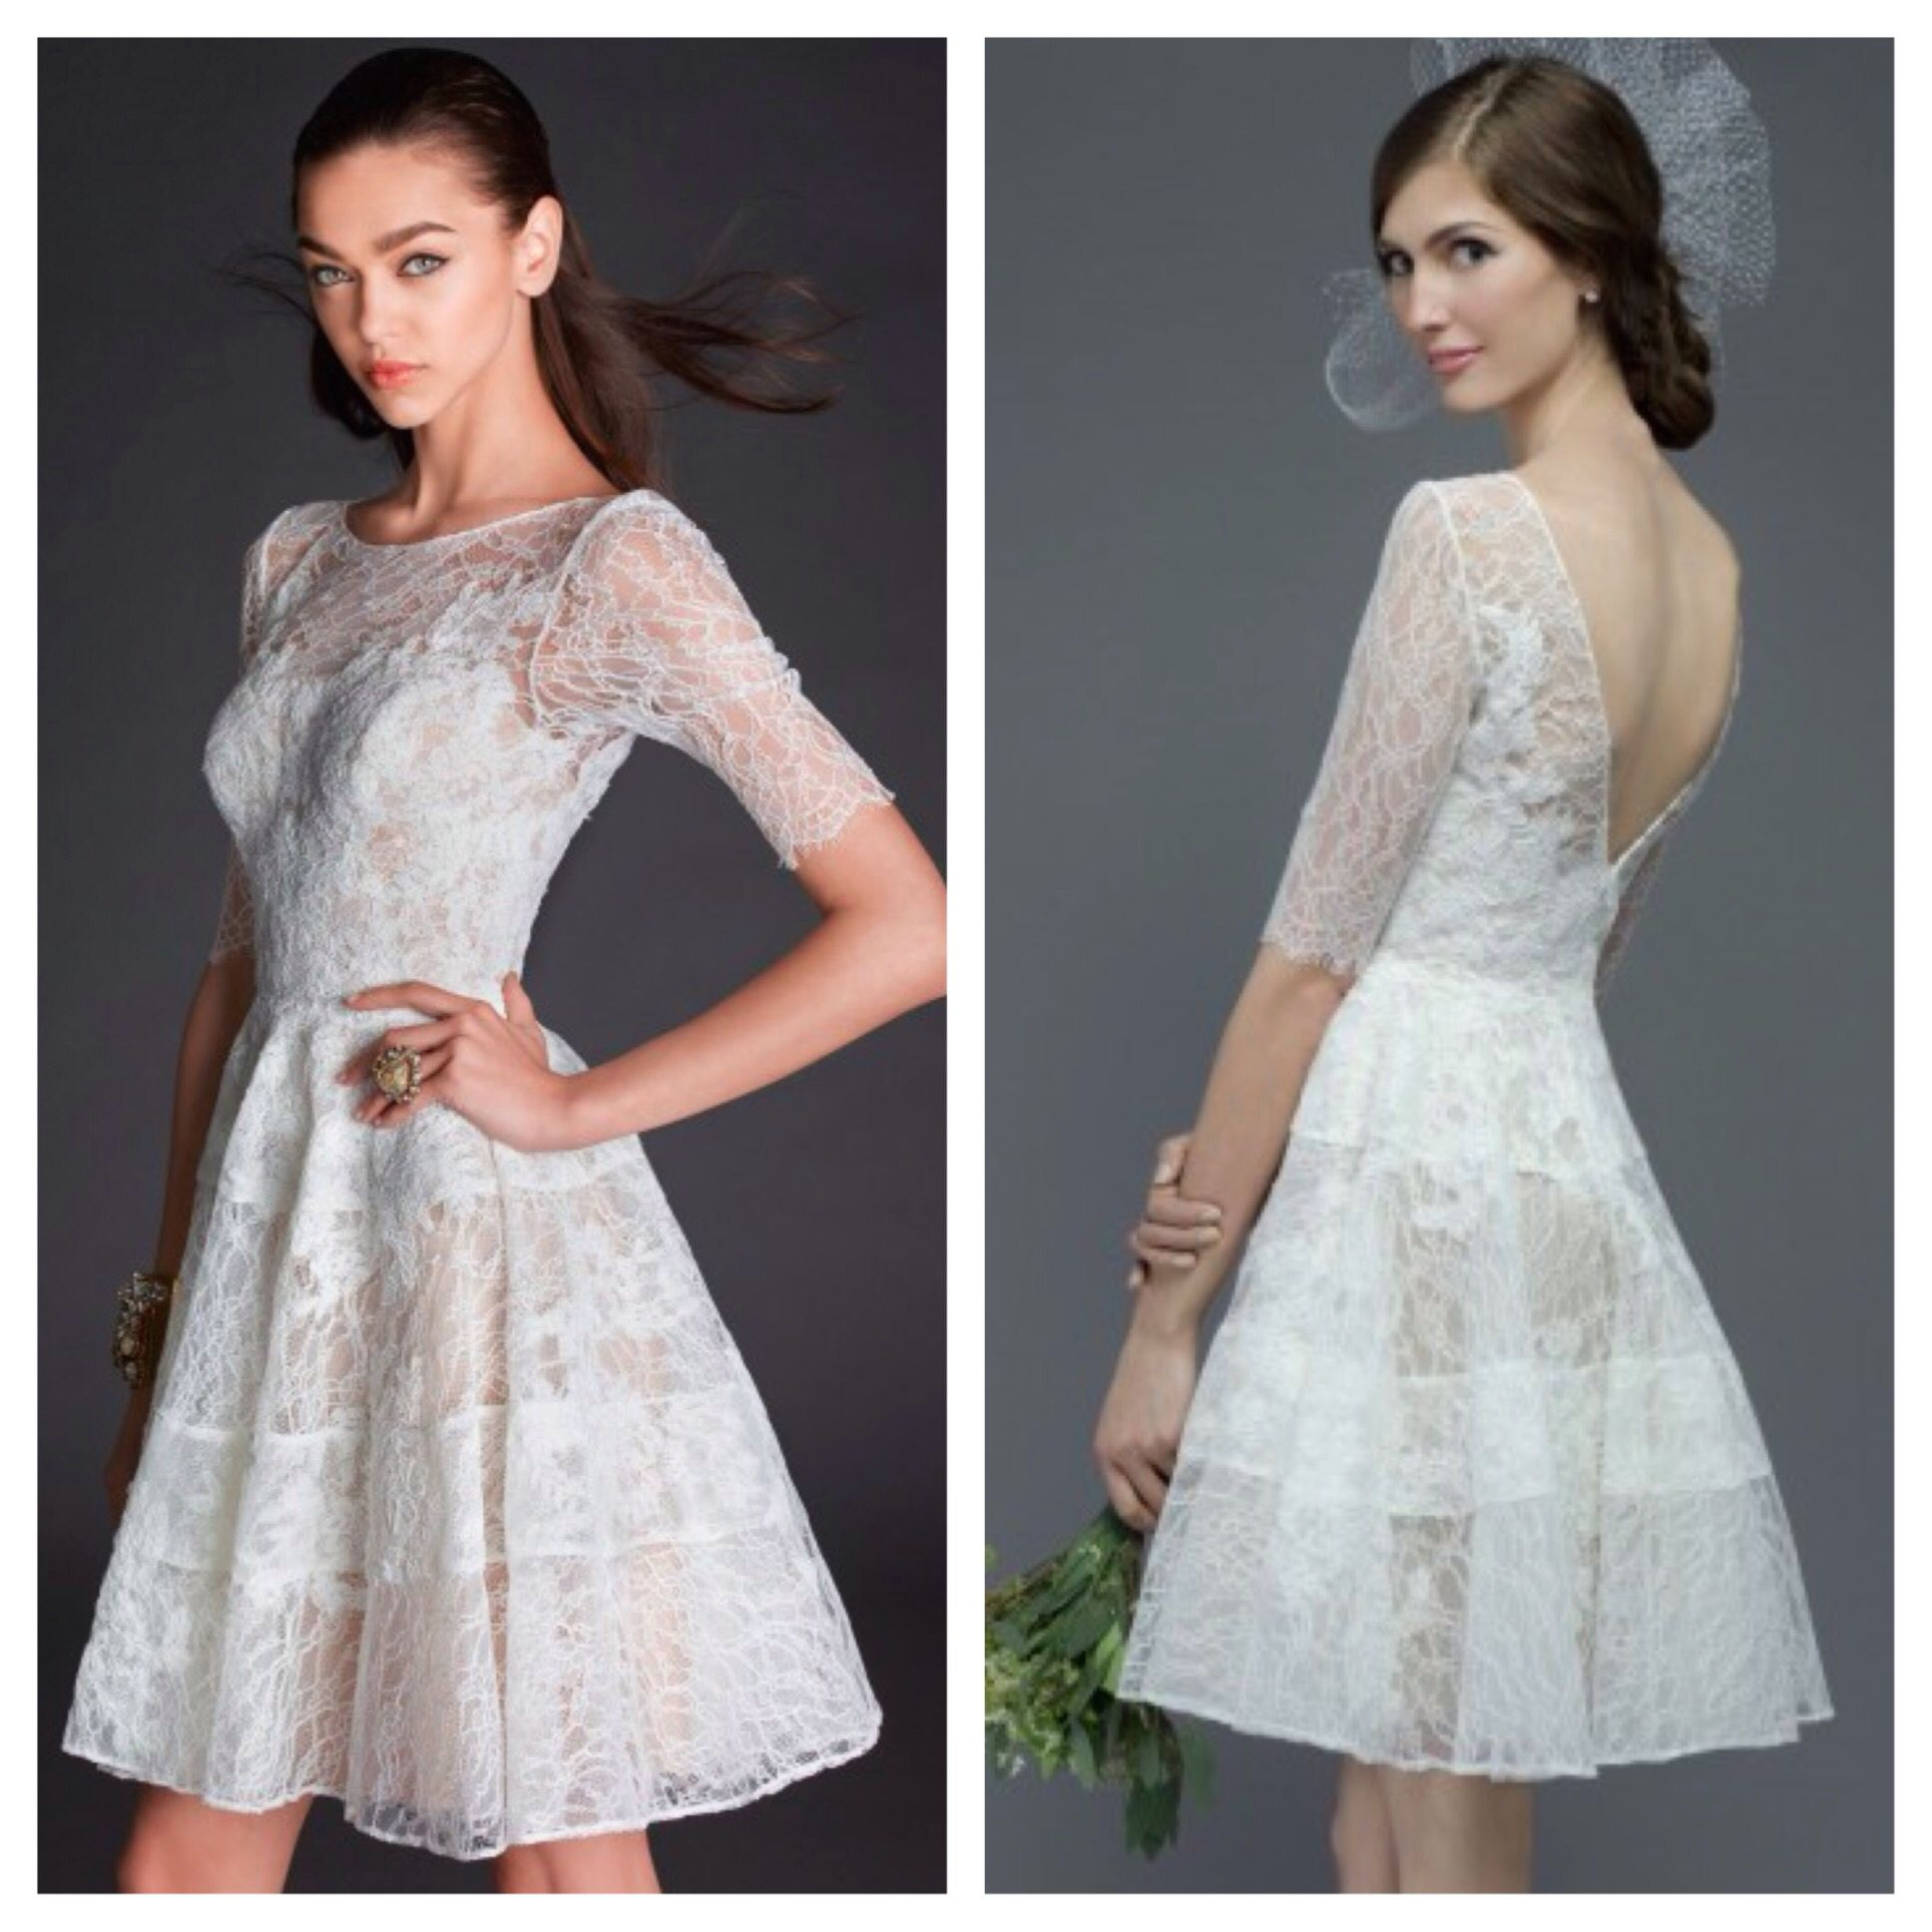 Watters Short Bridal Gown. Style 6717E. Call for more information at 858-481-4900.